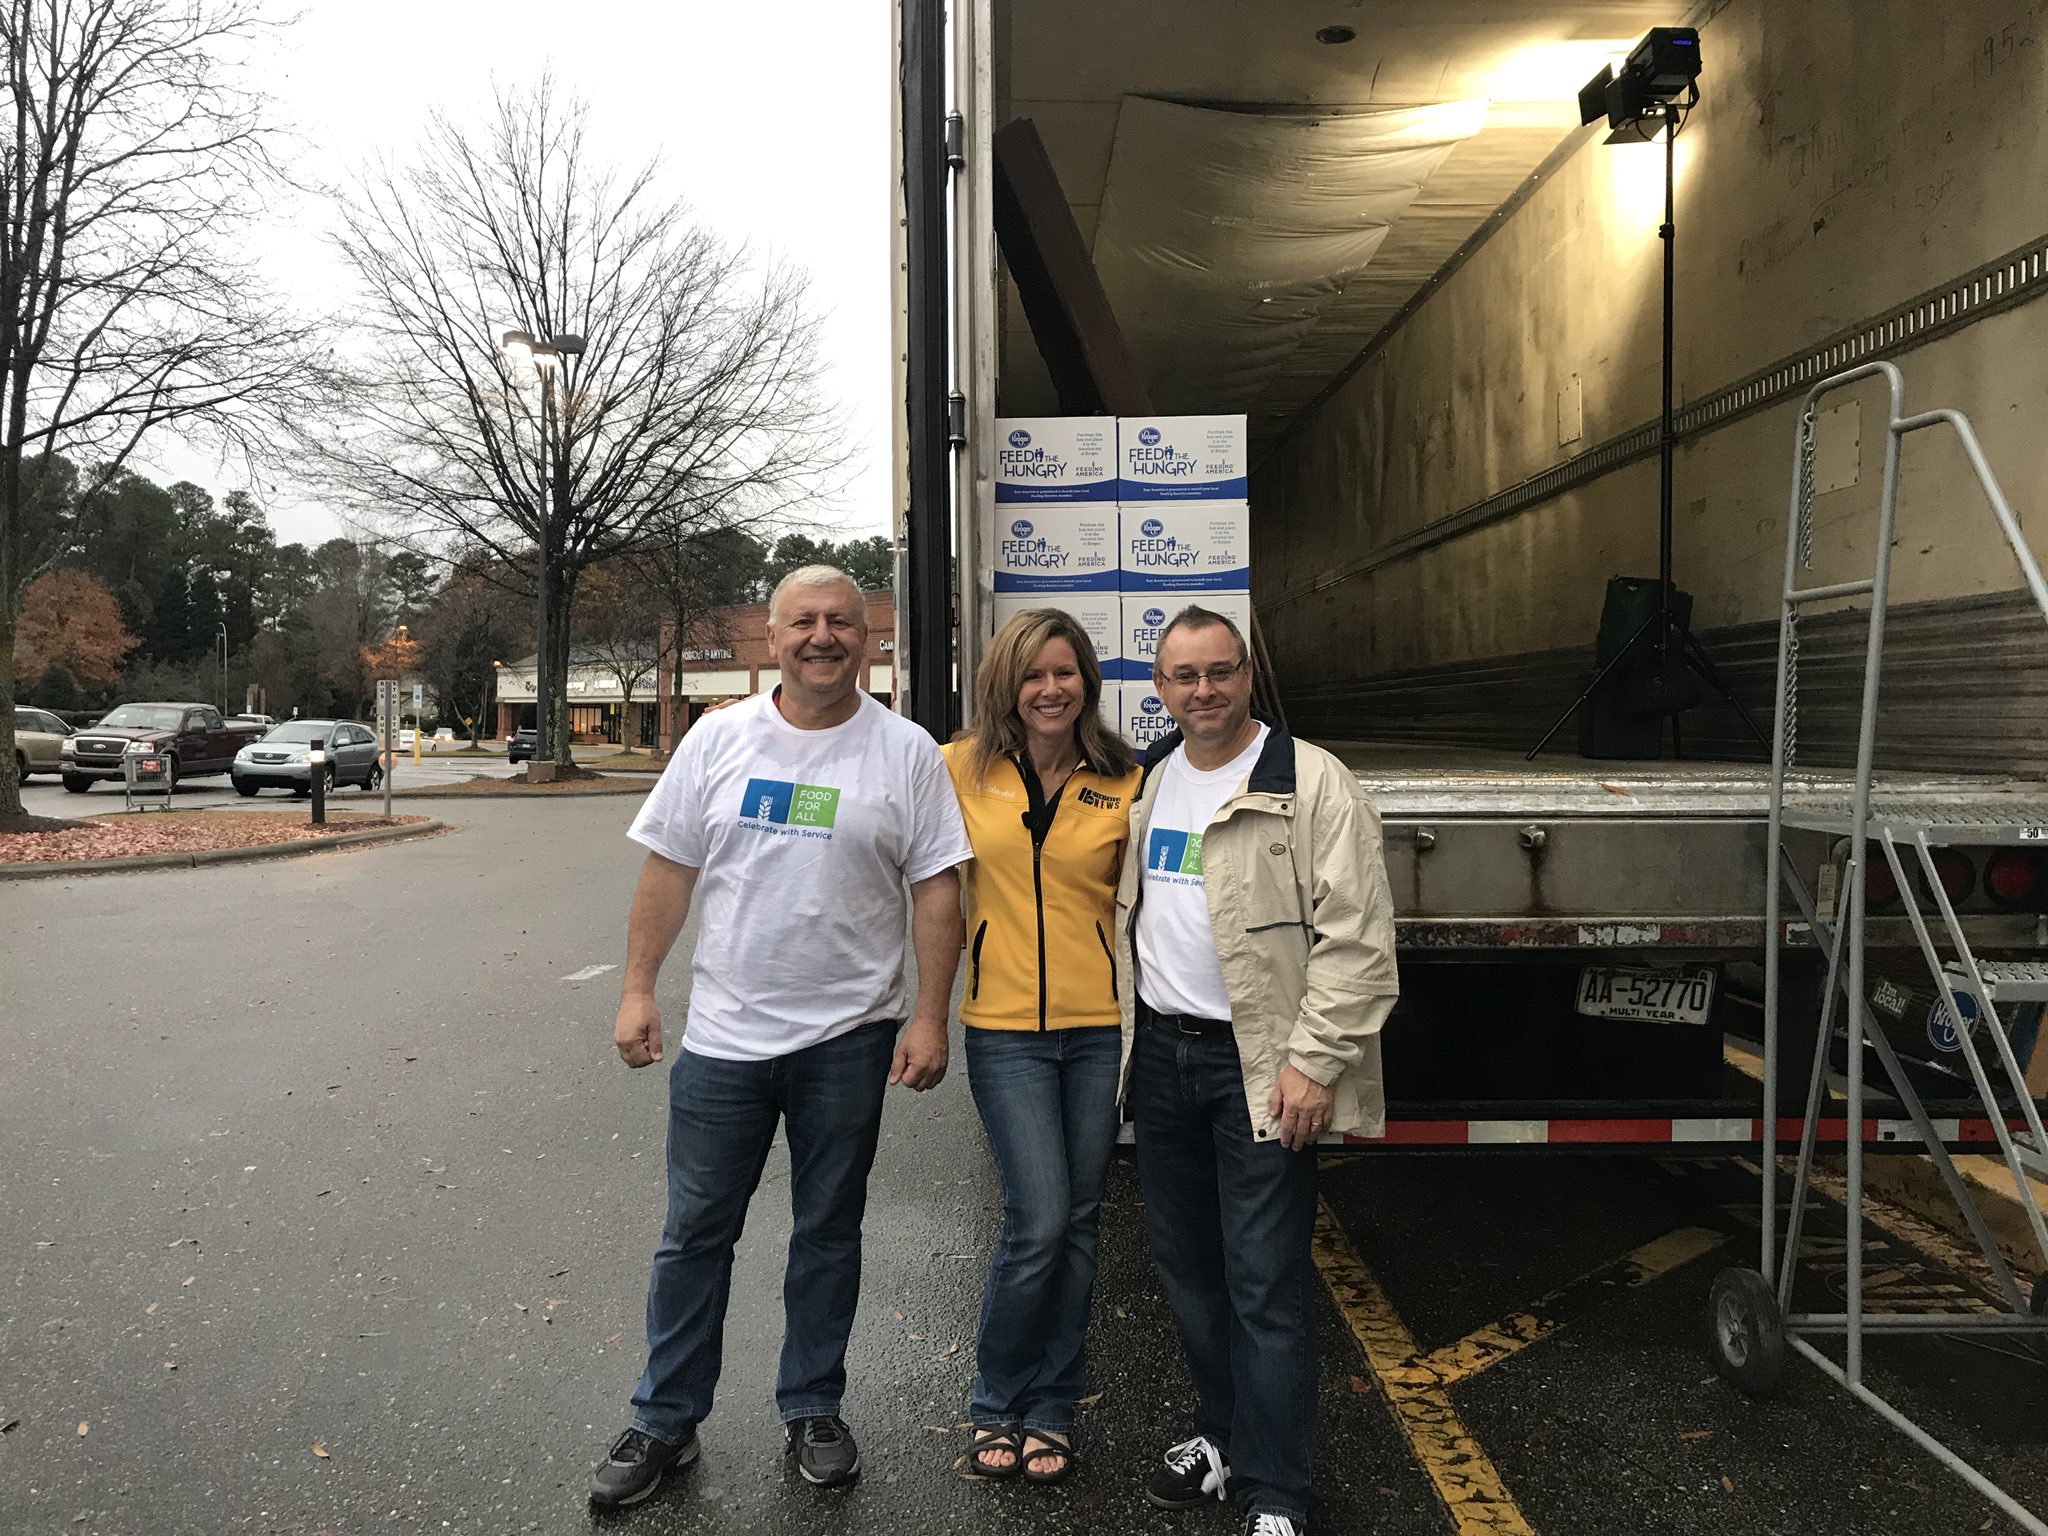 <div class='meta'><div class='origin-logo' data-origin='none'></div><span class='caption-text' data-credit=''>Thanks to these Net App volunteers ready to take your donations for the ABC11 Together Food Drive at the Kroger in Cary at Maynard and High House</span></div>